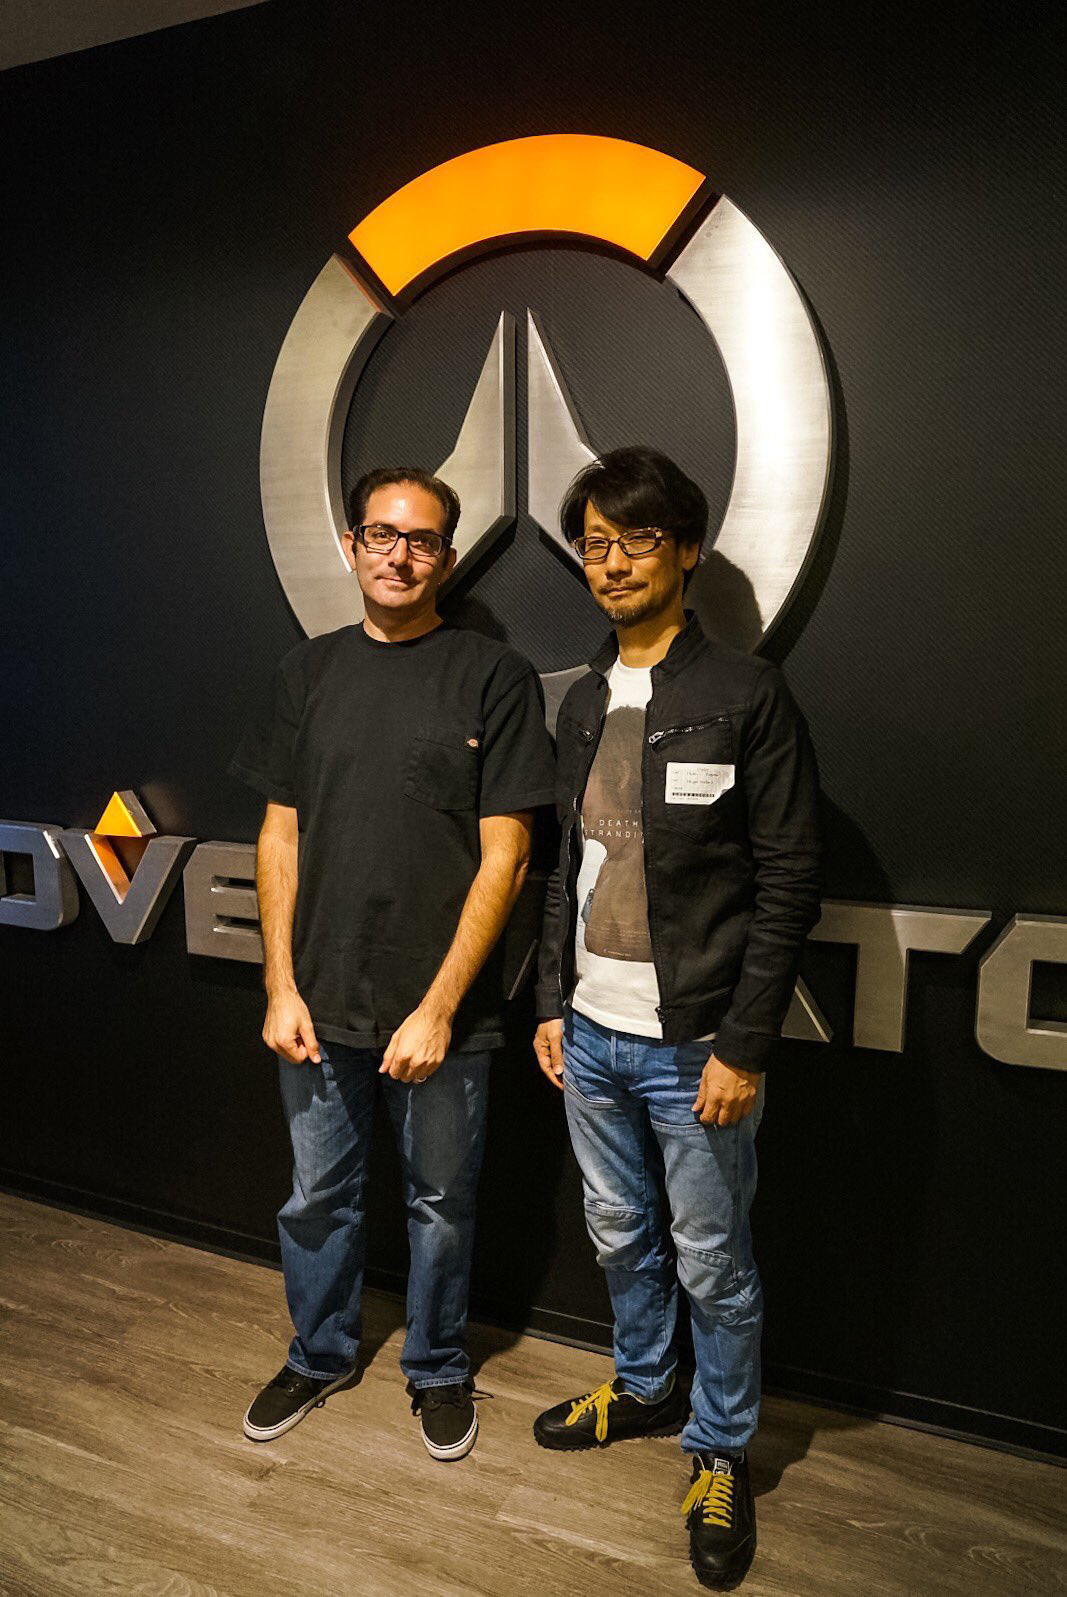 """Visited BLIZZARD in Irvine, California. Photo with Jeff-san, the game director of OVERWATCH."" - Hideo Kojima"